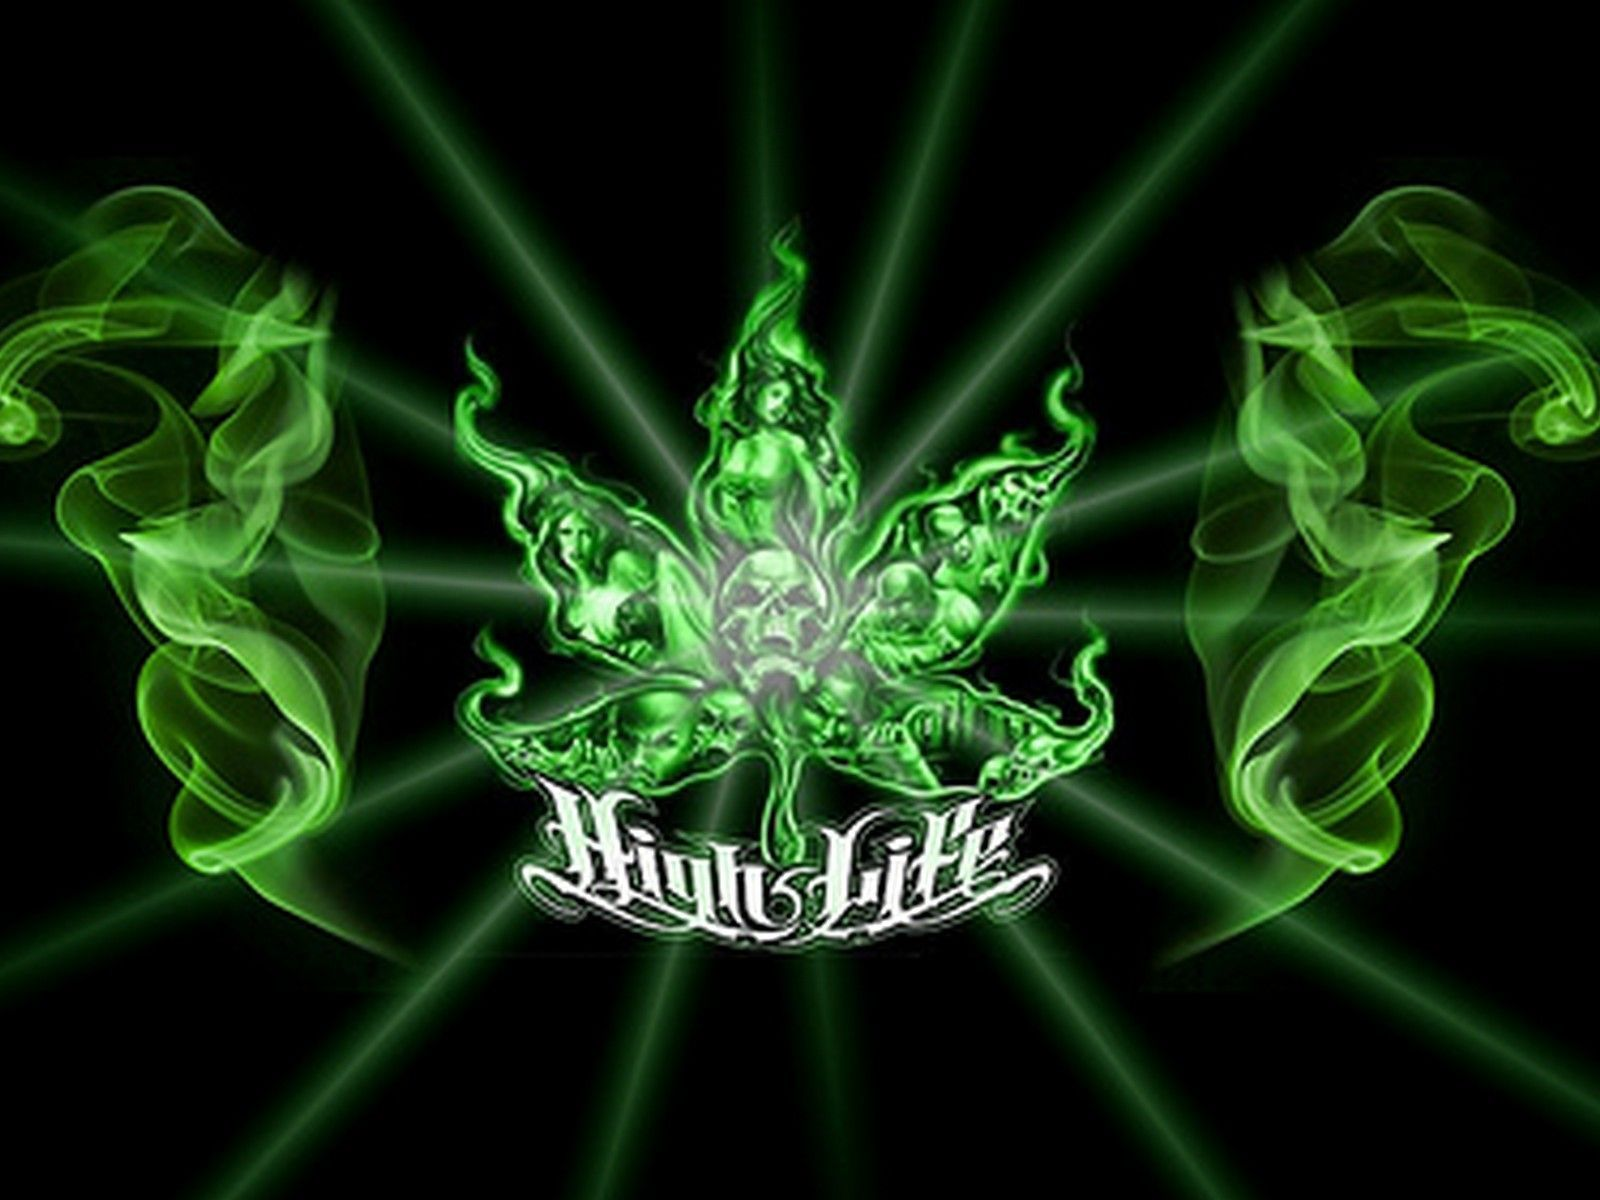 Iphone Hd Wallpaper Quotes Cool Weed Wallpapers Group 57